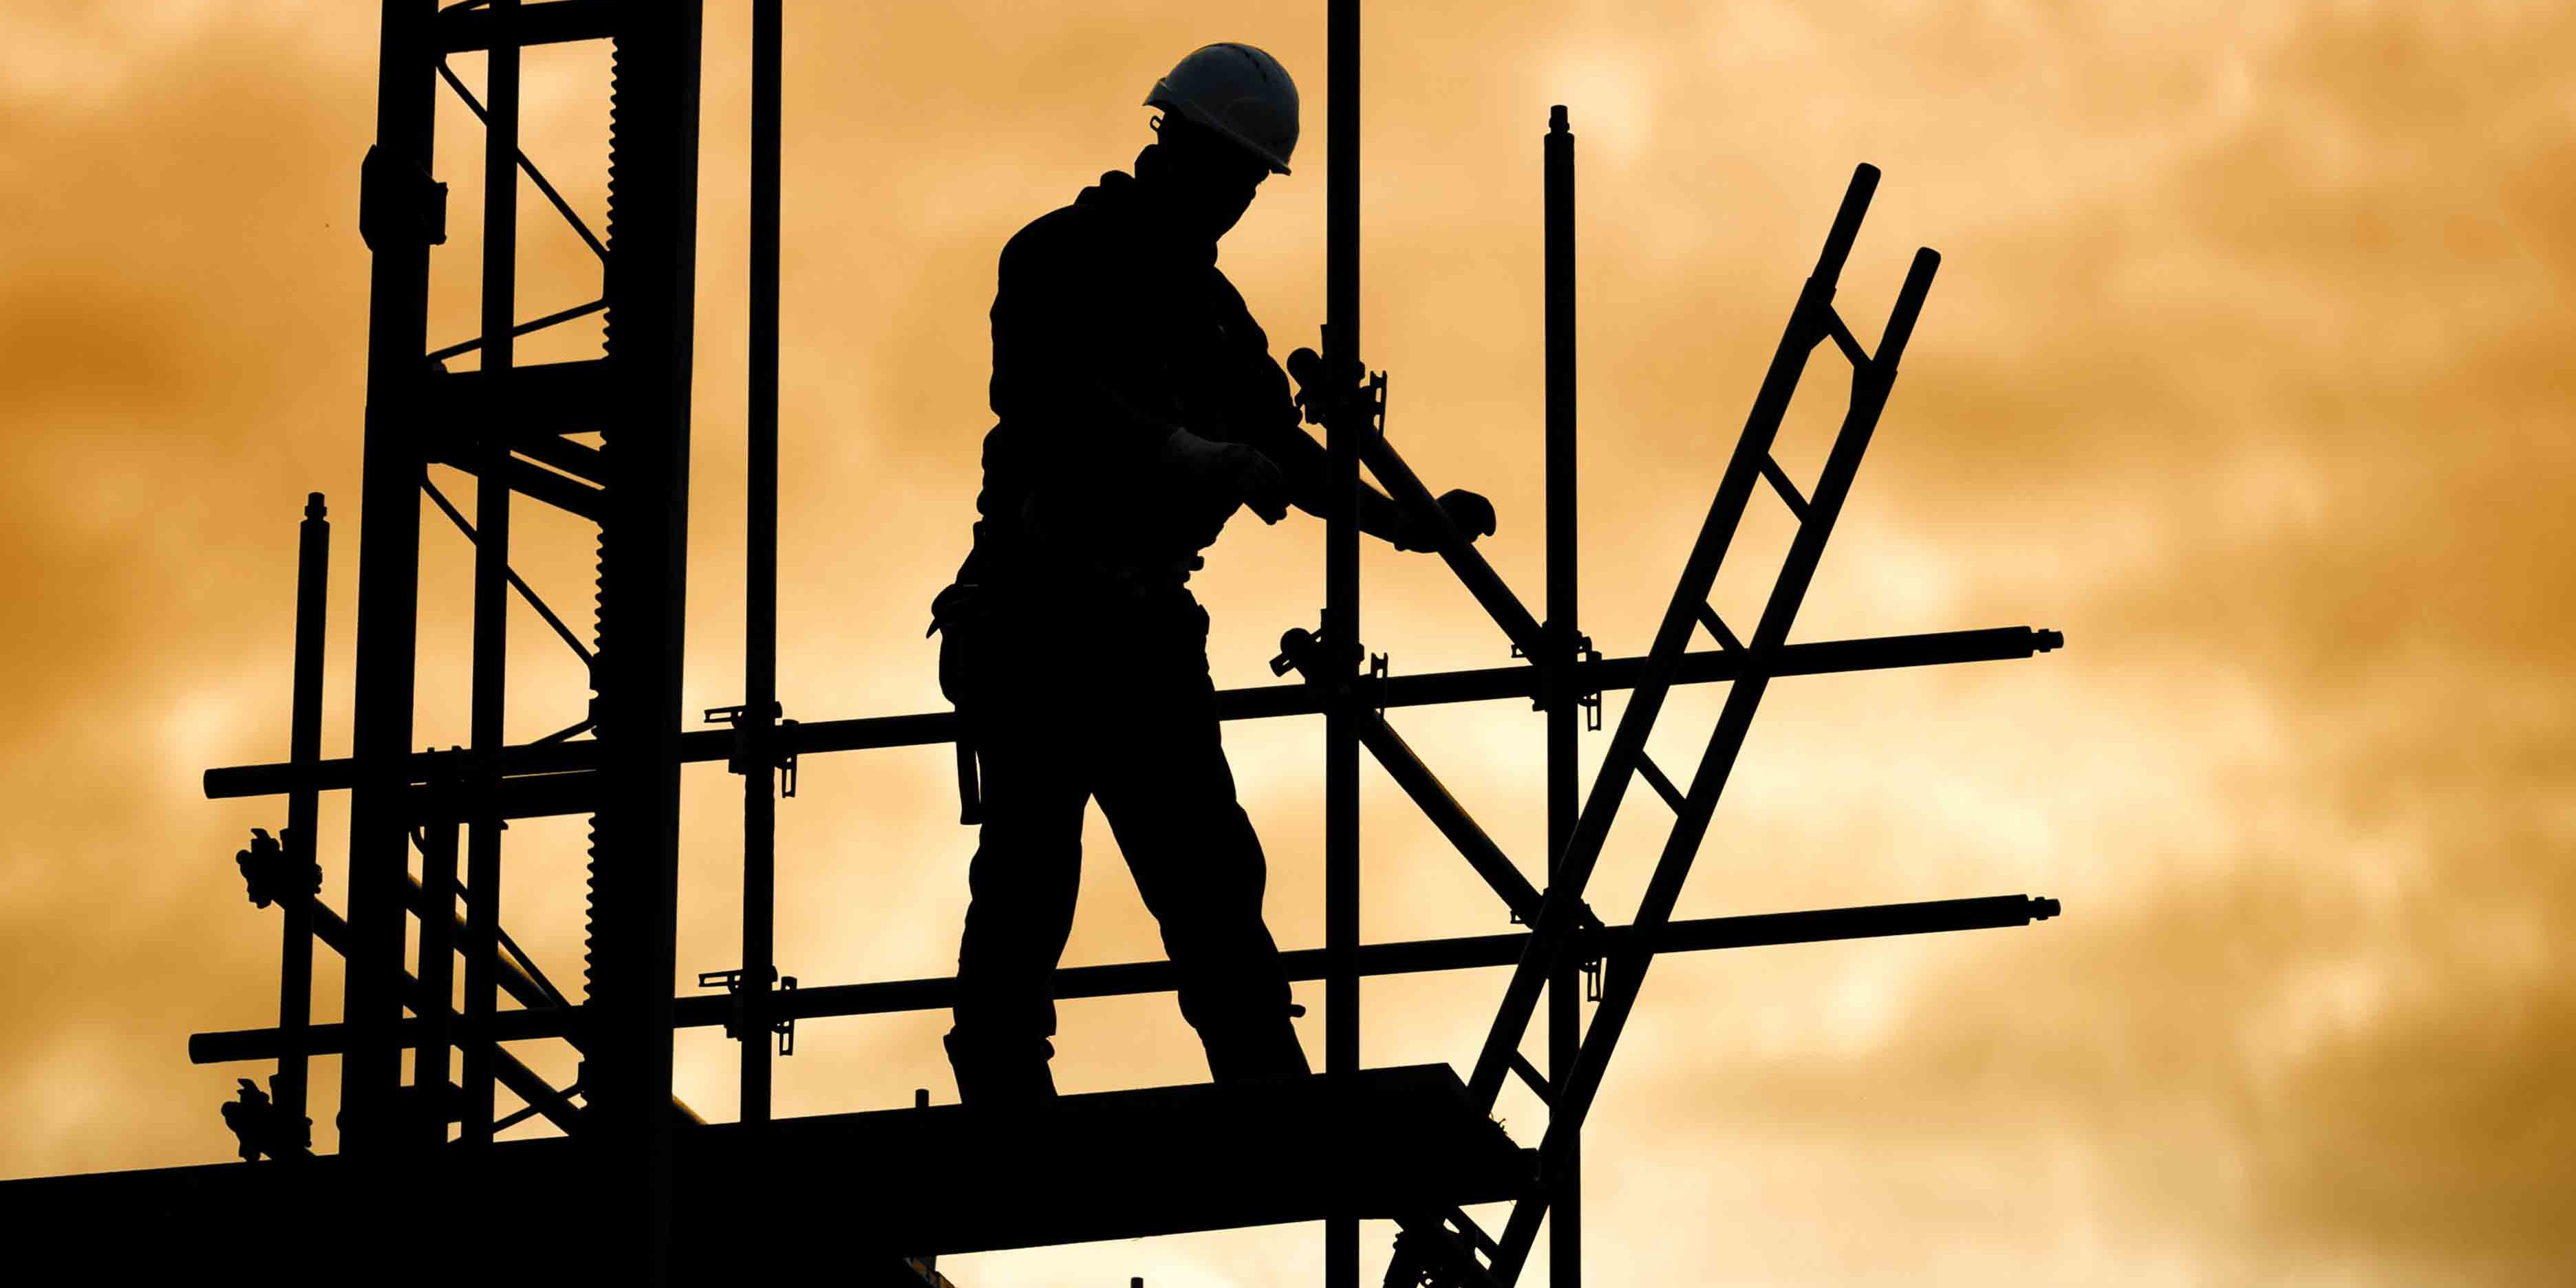 Scaffolder securing poles Thirsk Scaffolding North Yorkshire North East England